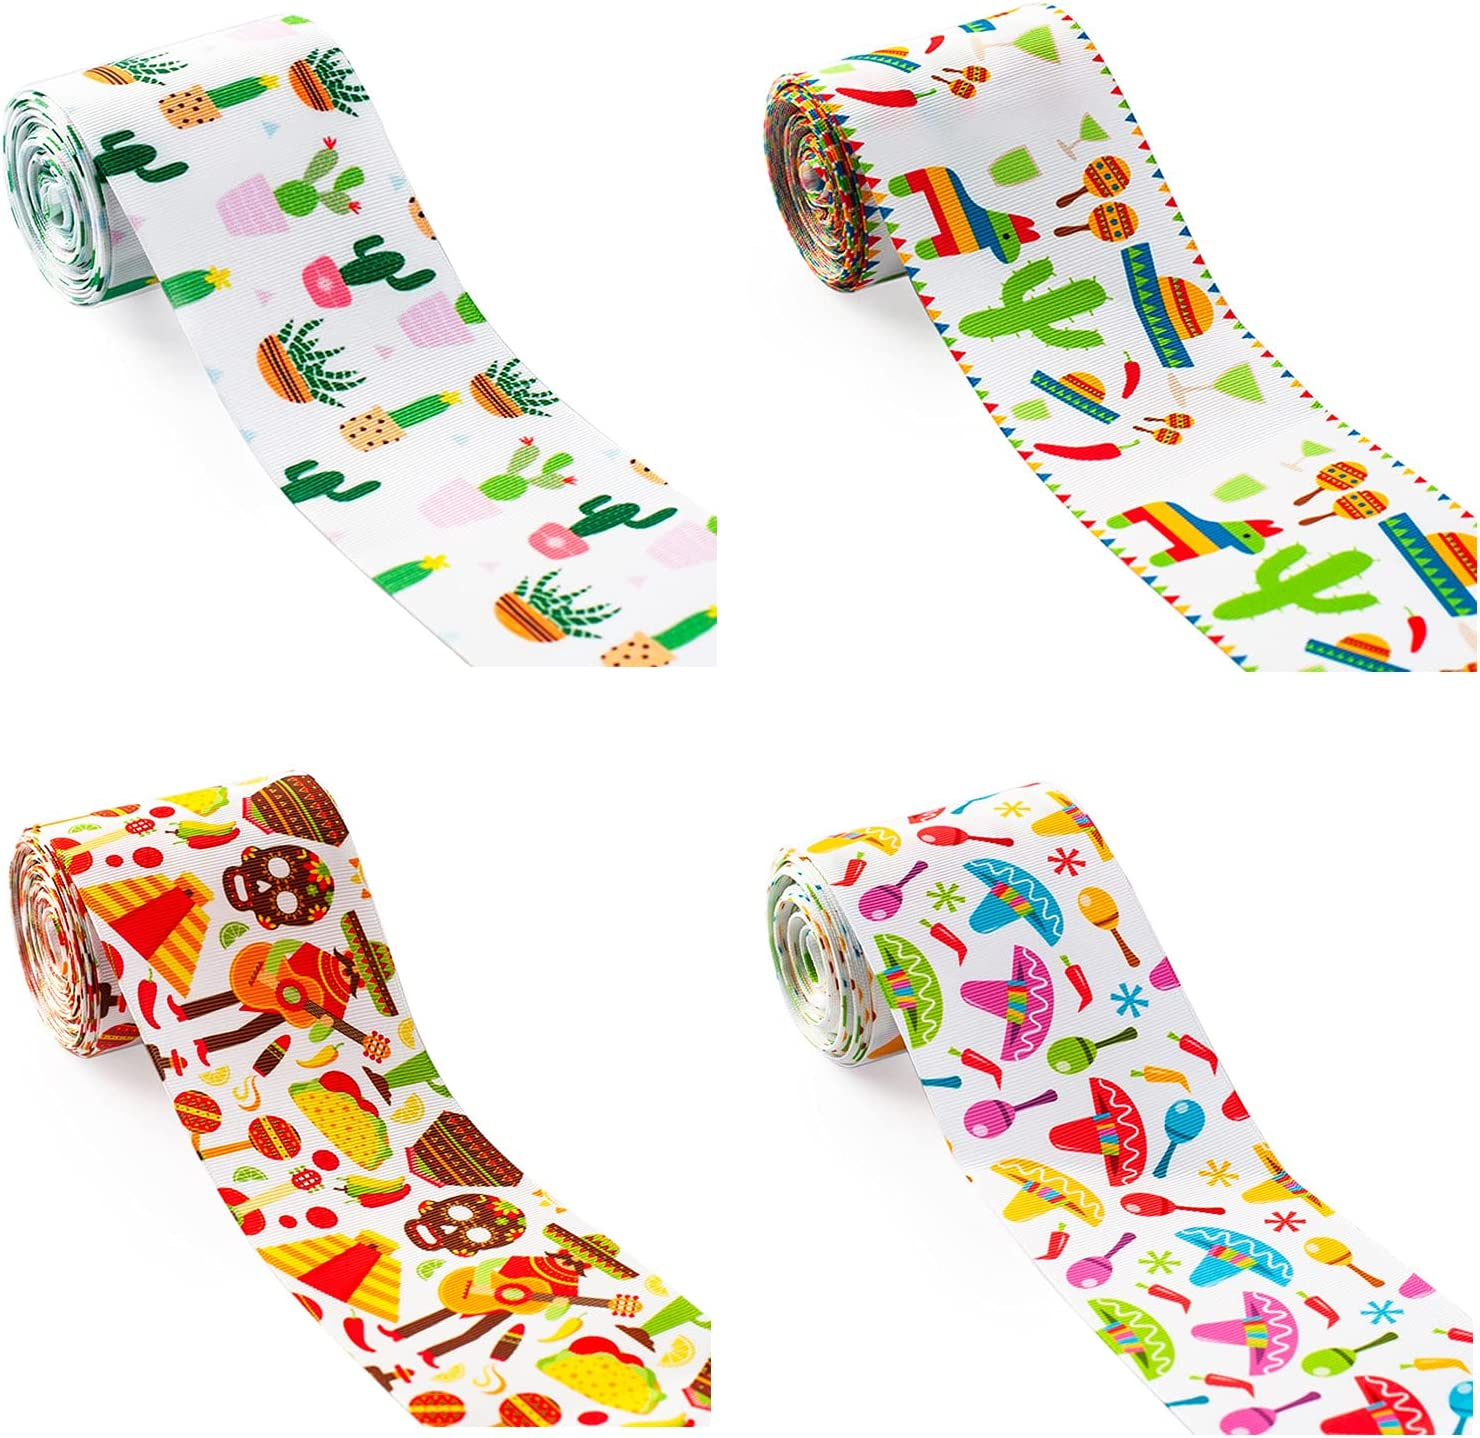 4 Rollars 1.5 Inch Mexican Elements RibbonsCarnival Hat Cacti Food Pattern Ribbon Fiesta Ribbon Fabric Ribbons for DIY Gift Wrapping Party Decoration Crafting Sewing Supplies